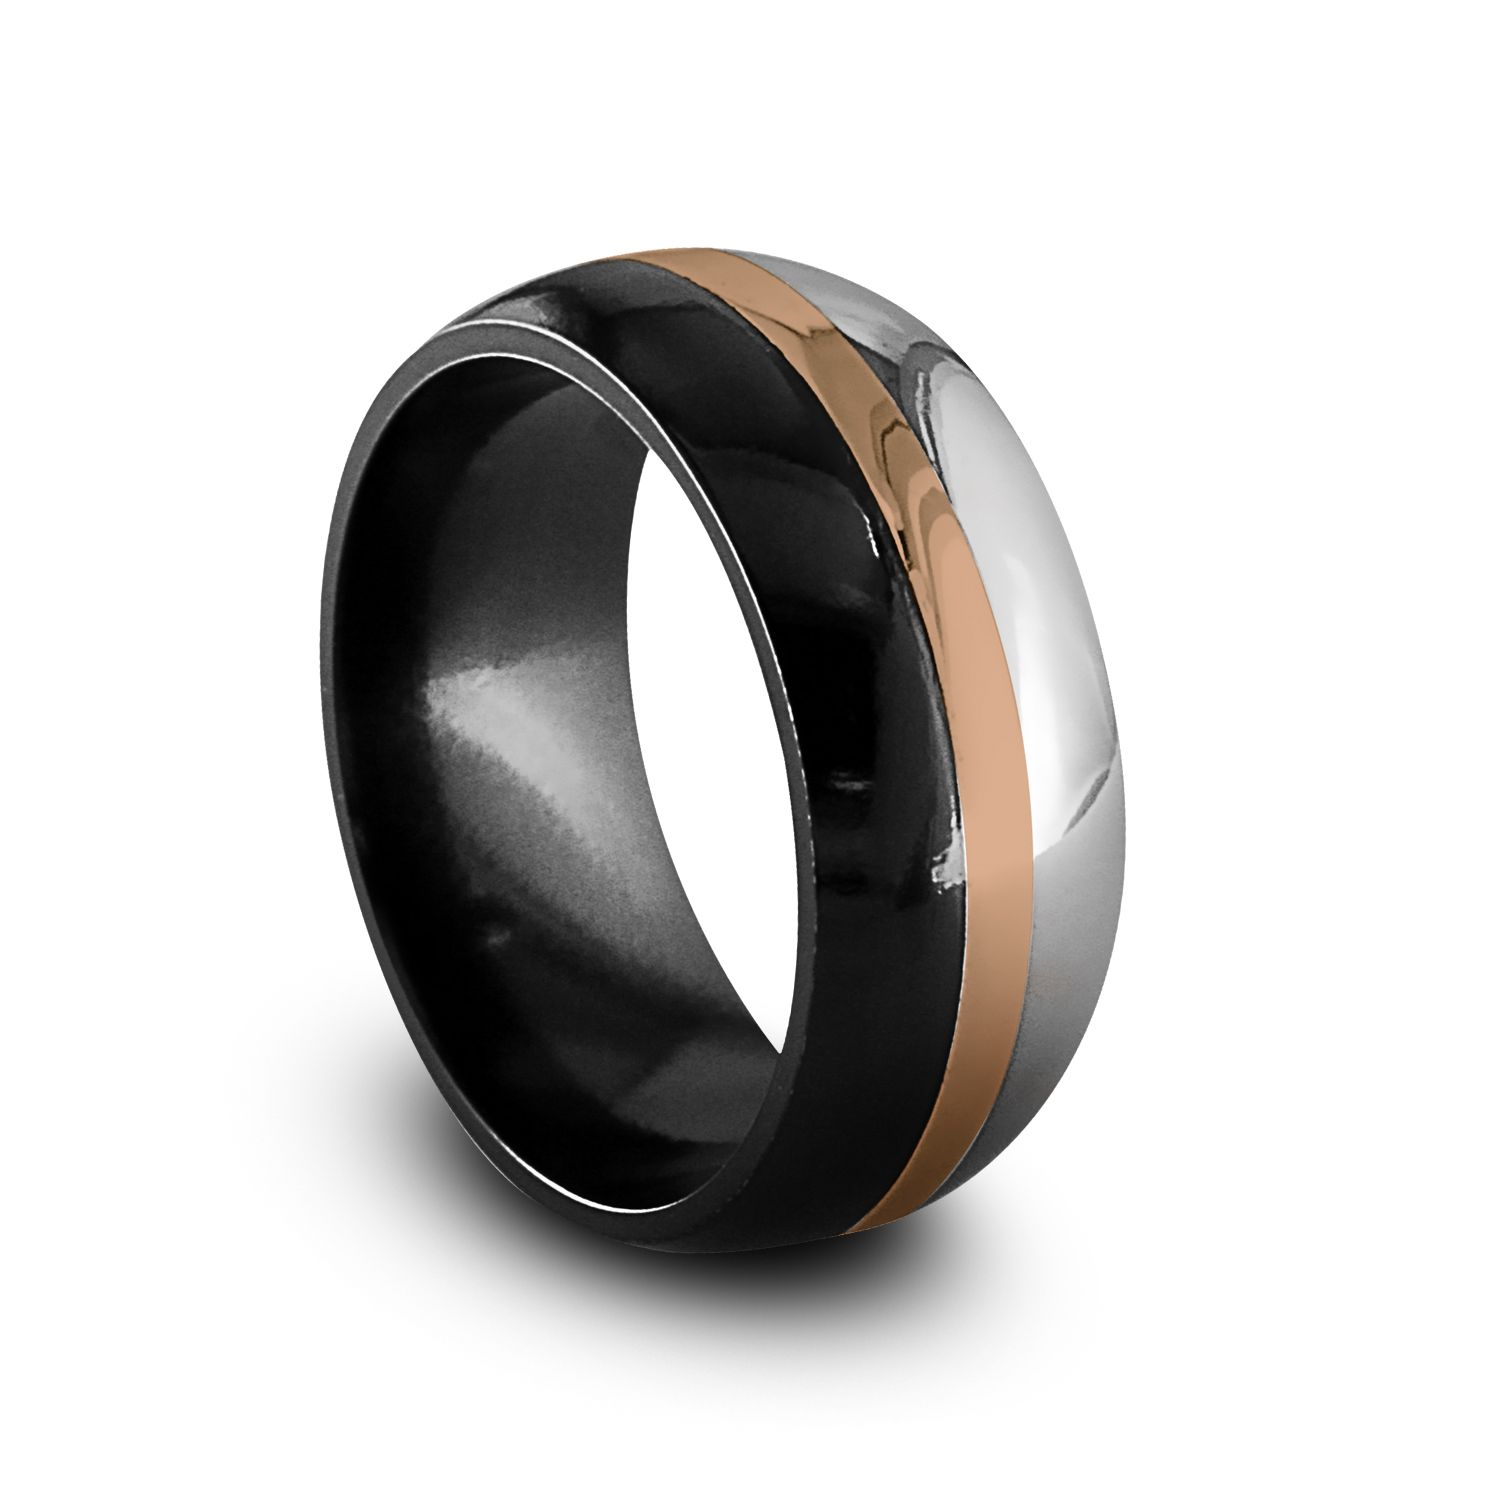 wedding bands kingofhearts exquisite and titanium polished gold me mens black walmart unique band